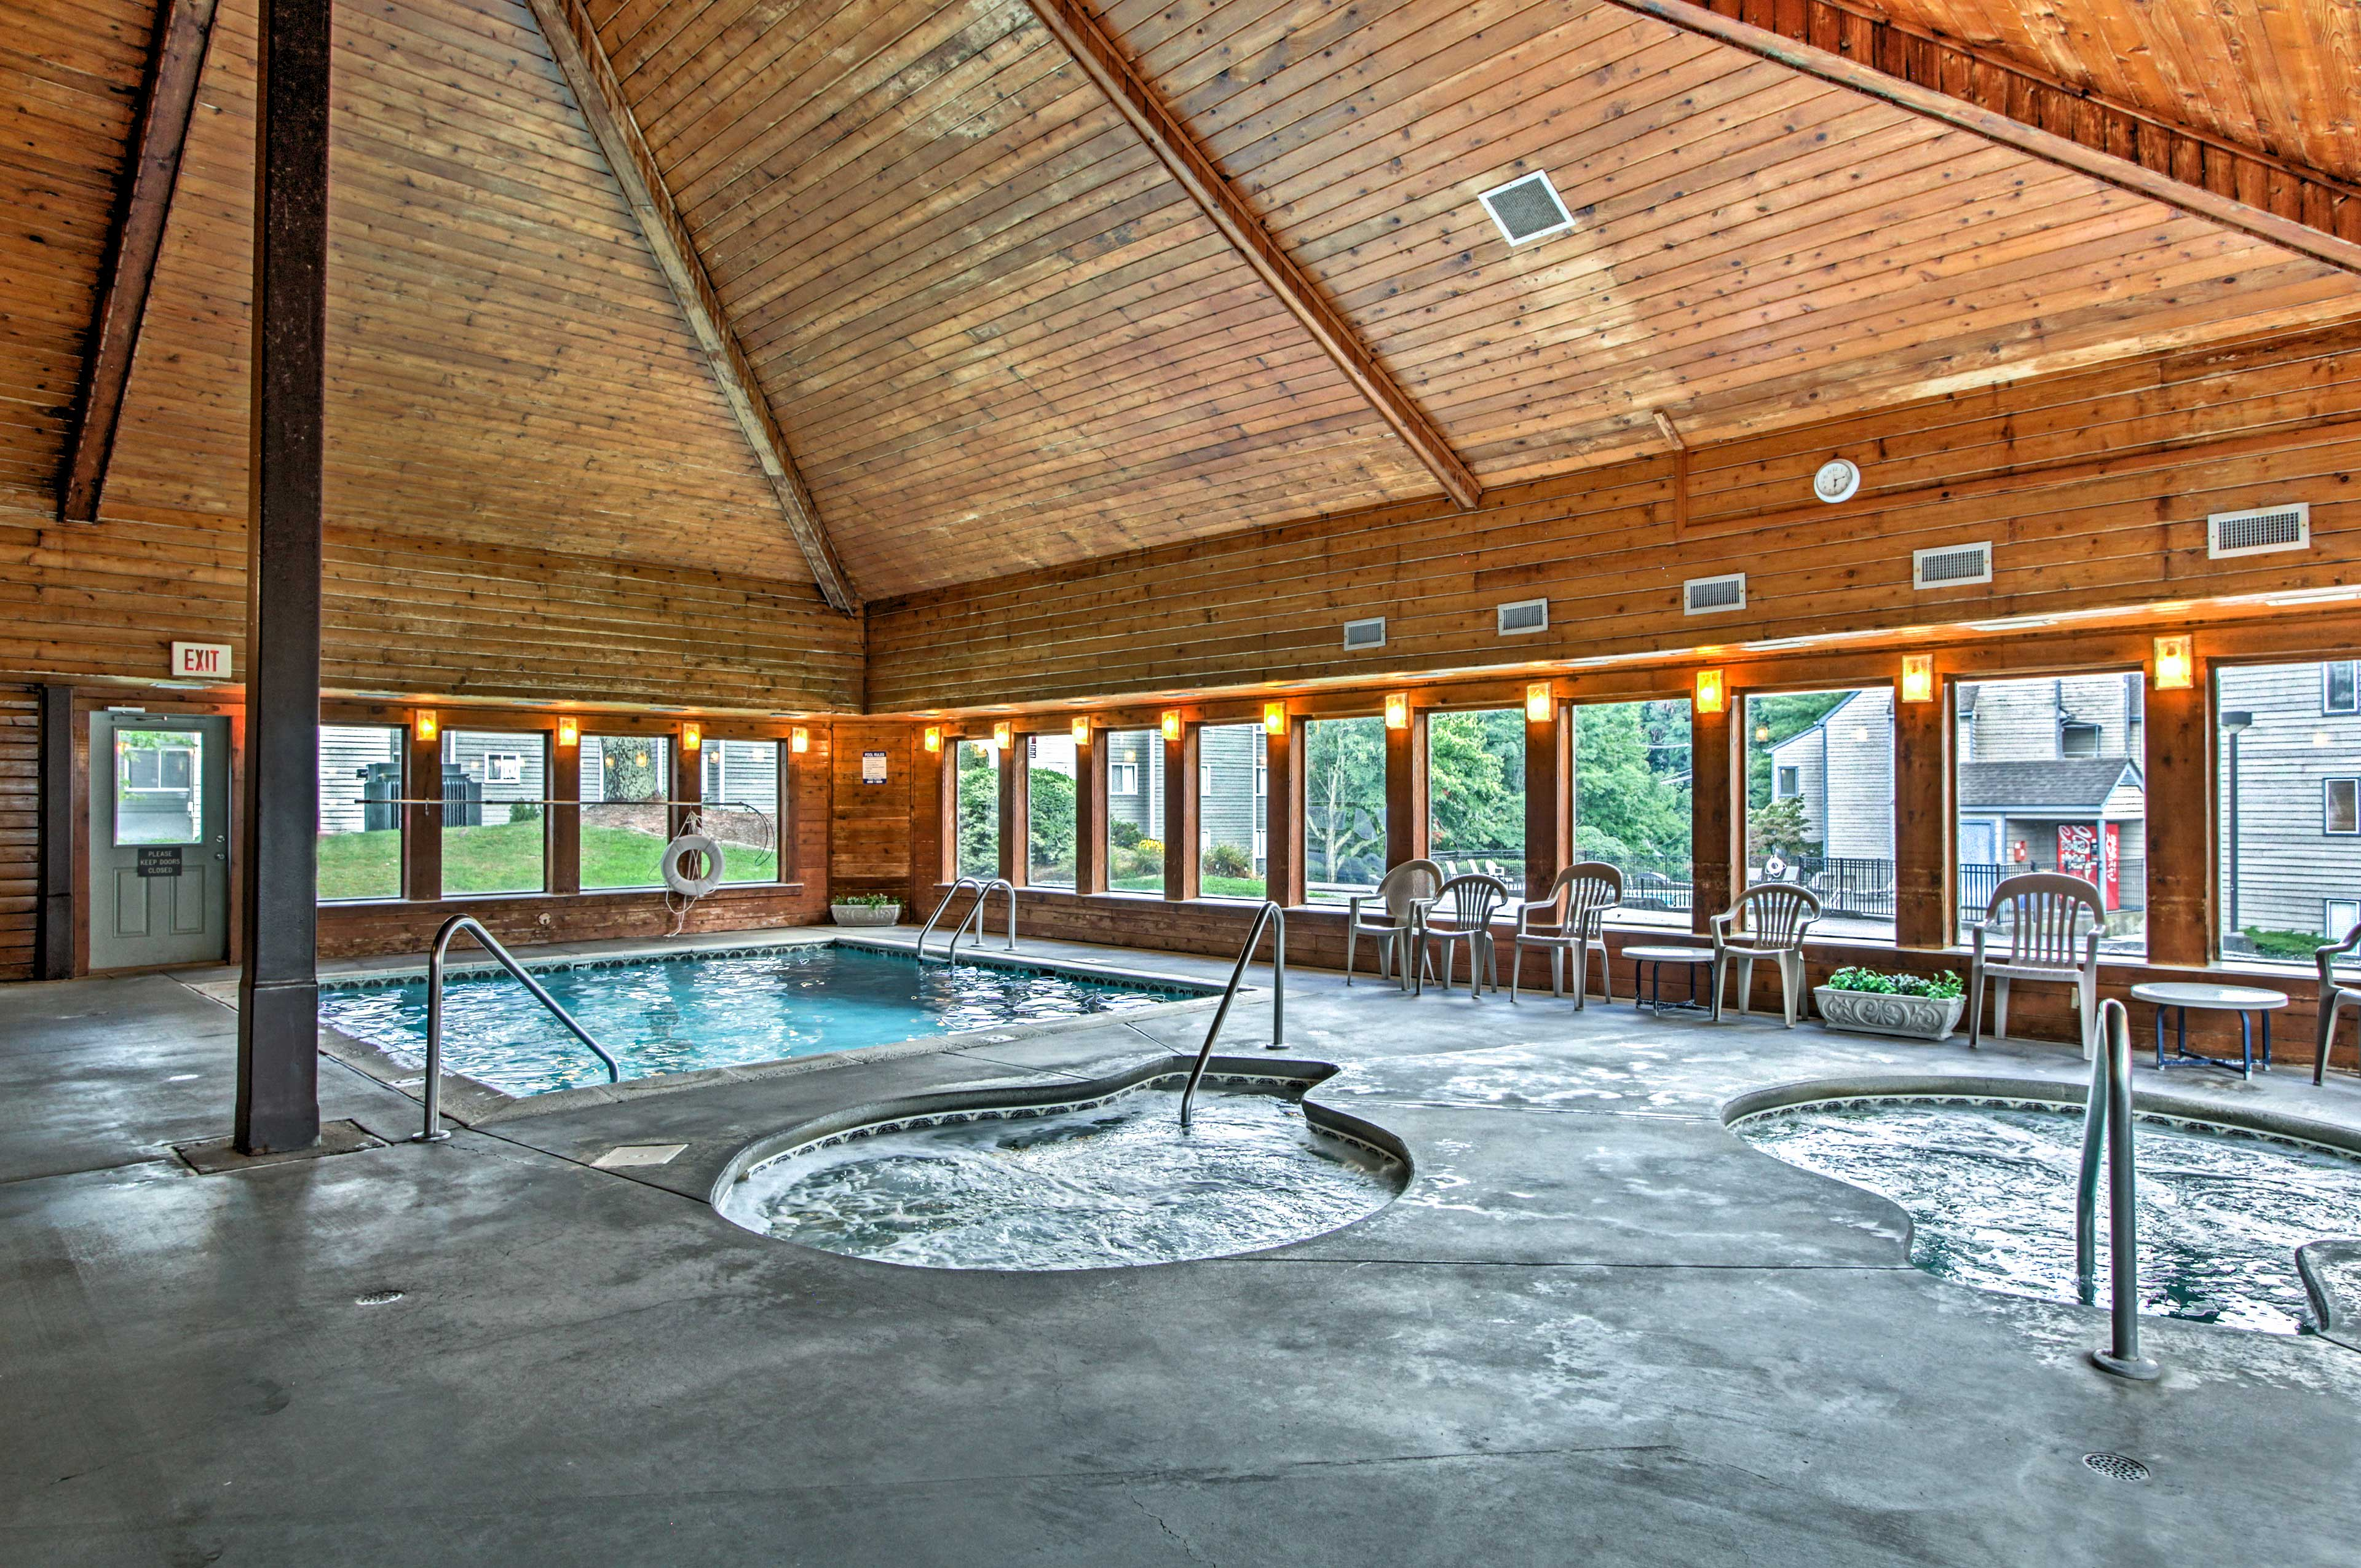 Relax in one of the shared hot tubs after a day of skiing or tubing.